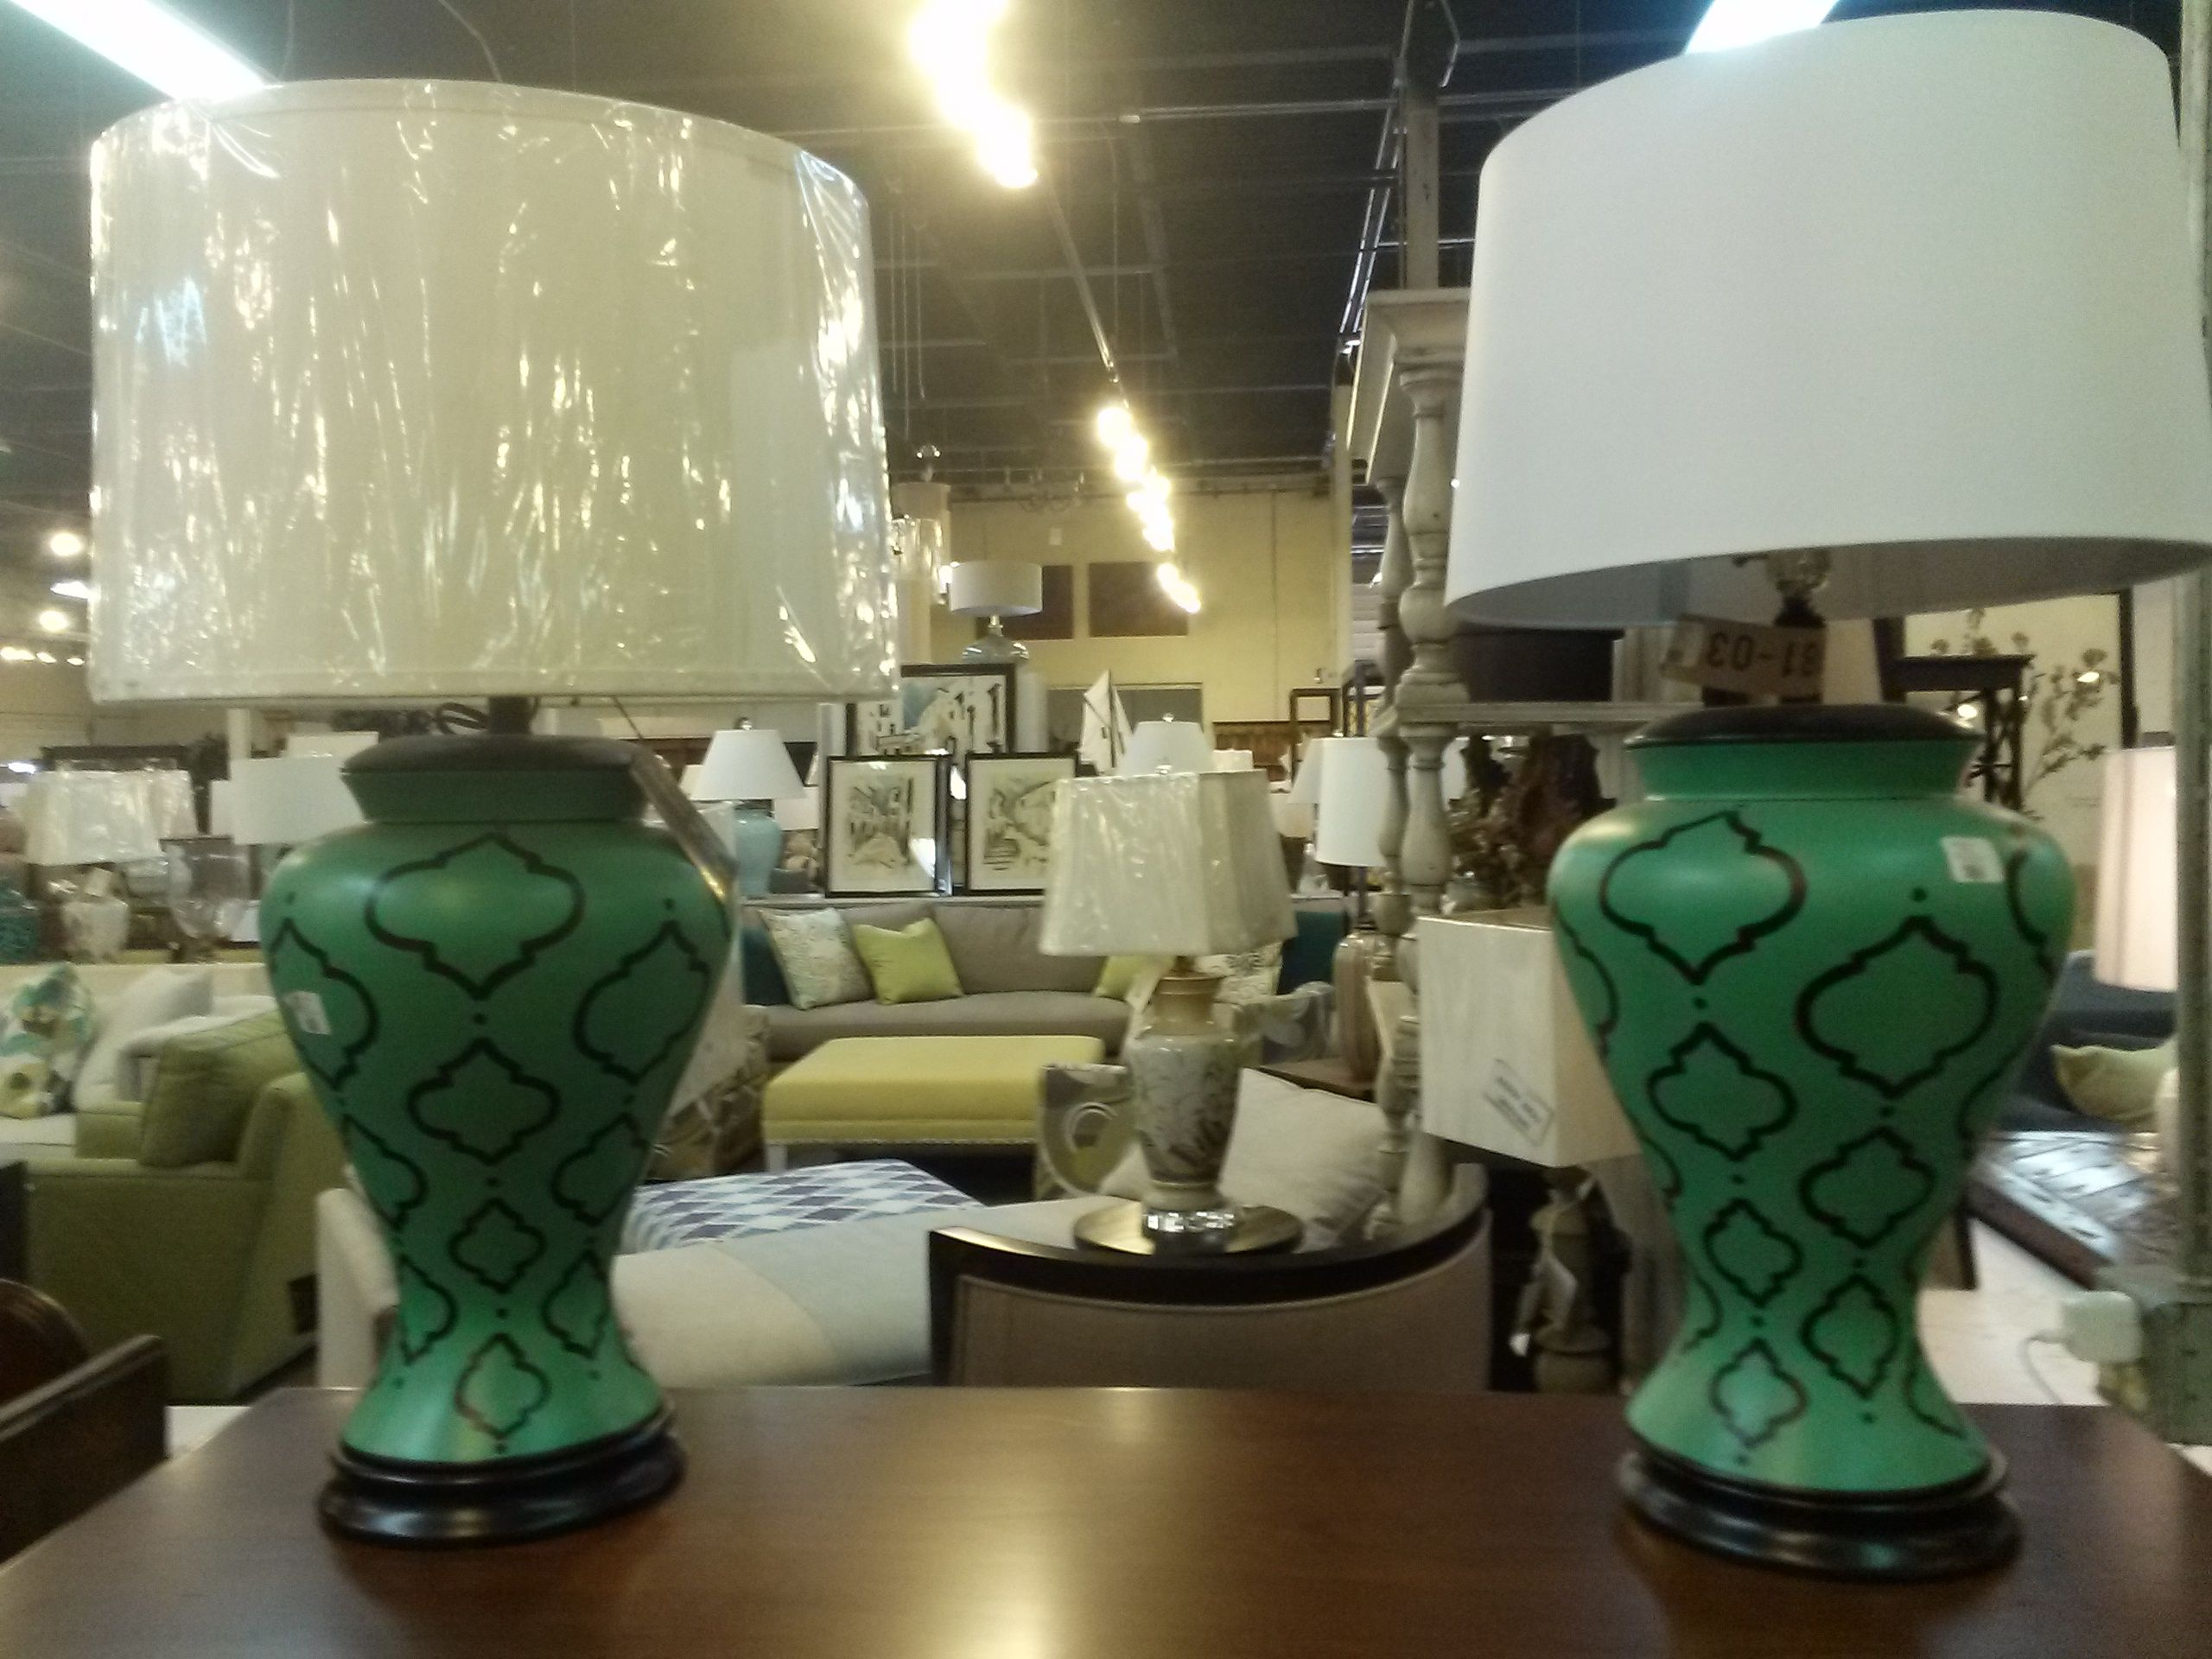 Gorgeous simple hand painted table lamps at green front interiors gorgeous simple hand painted table lamps at green front interiors on yonkers rd my new geotapseo Gallery